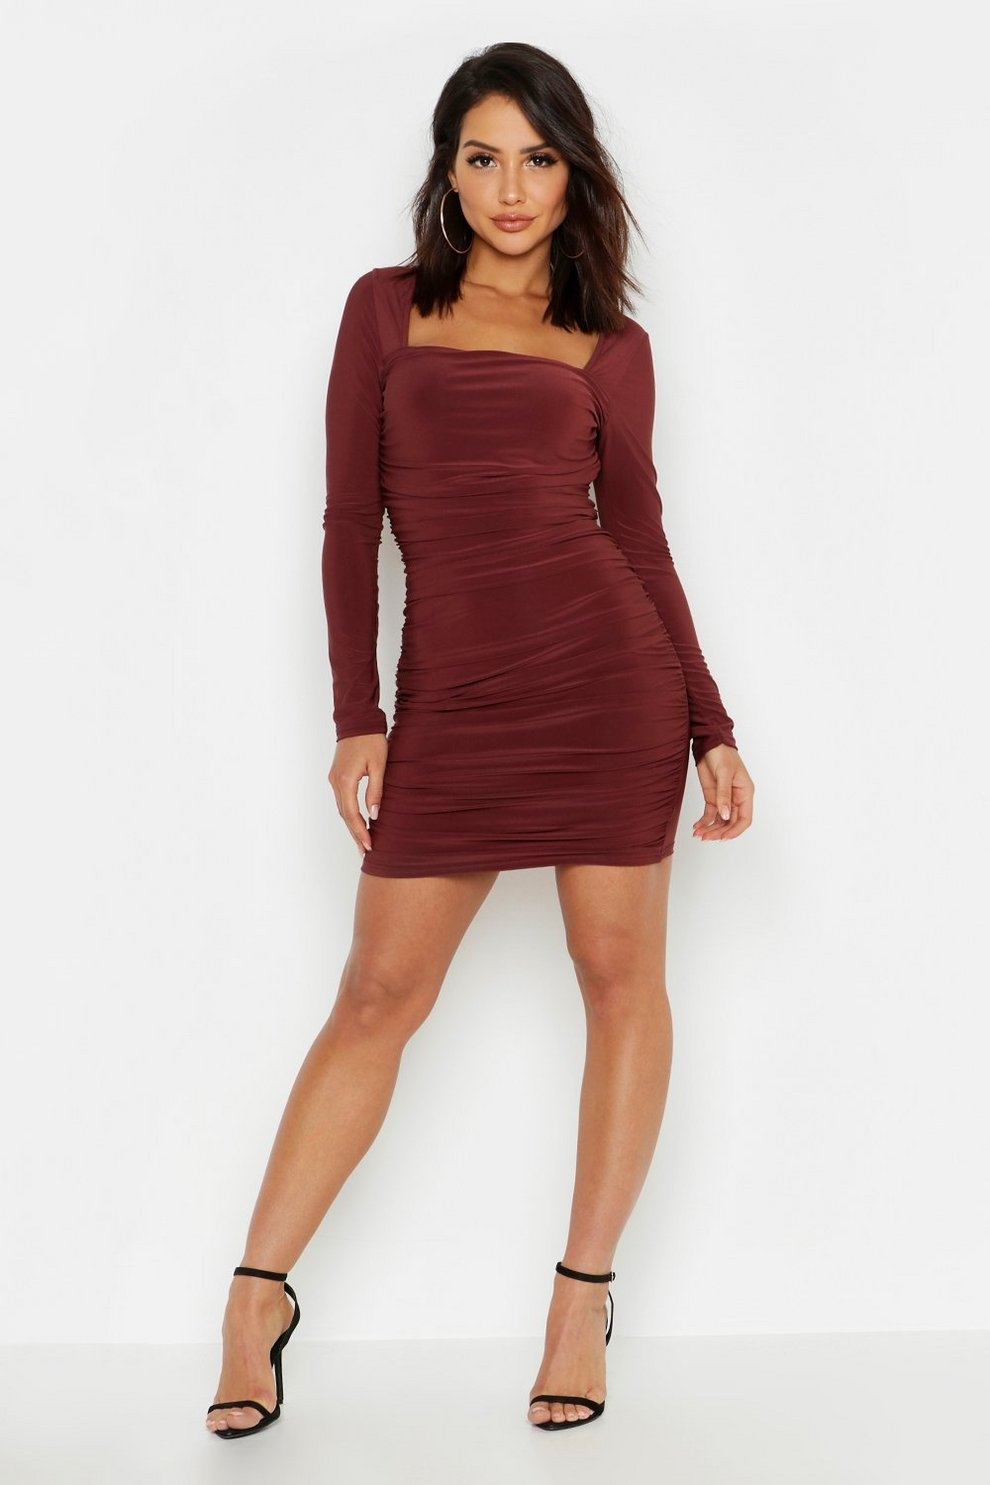 Boohoo Ruched Dress Bodycon Front Slinky wOF4qn